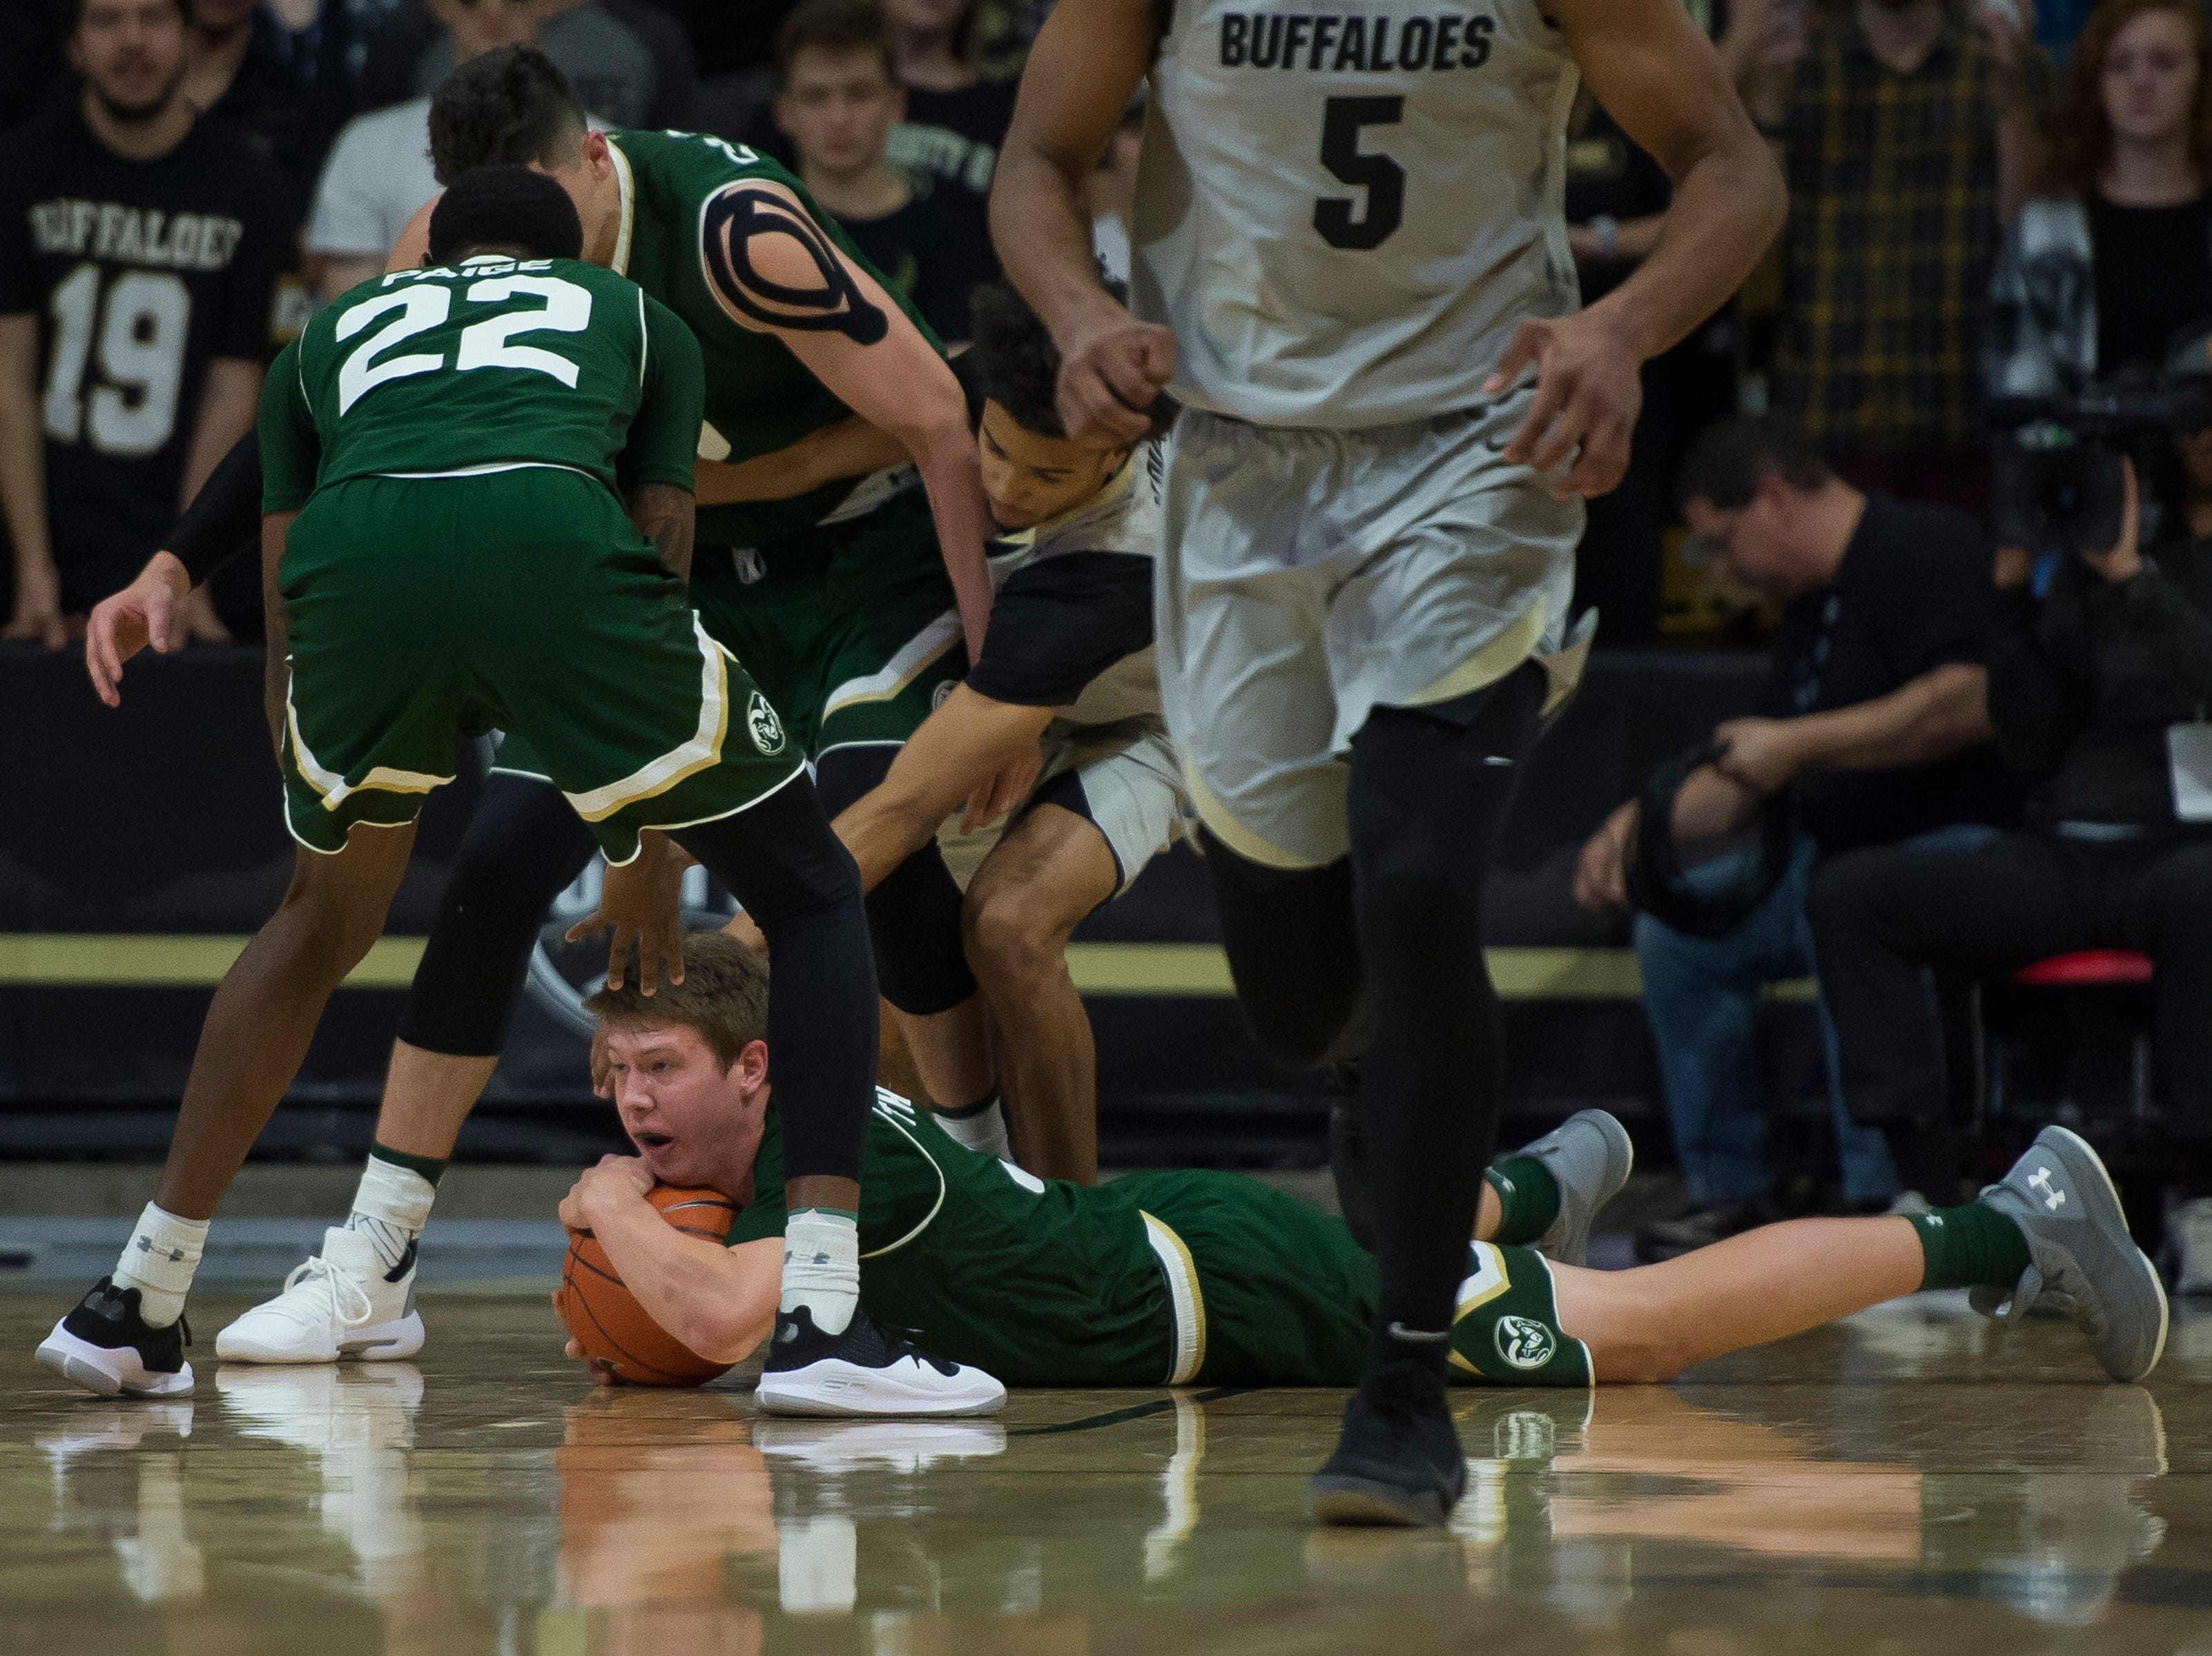 Colorado State University freshman forward Adam Thistlewood (31) jumps on a loose ball during a game against the University of Colorado on Saturday, Dec. 1, 2018, at the CU Event Center in Boulder, Colo.